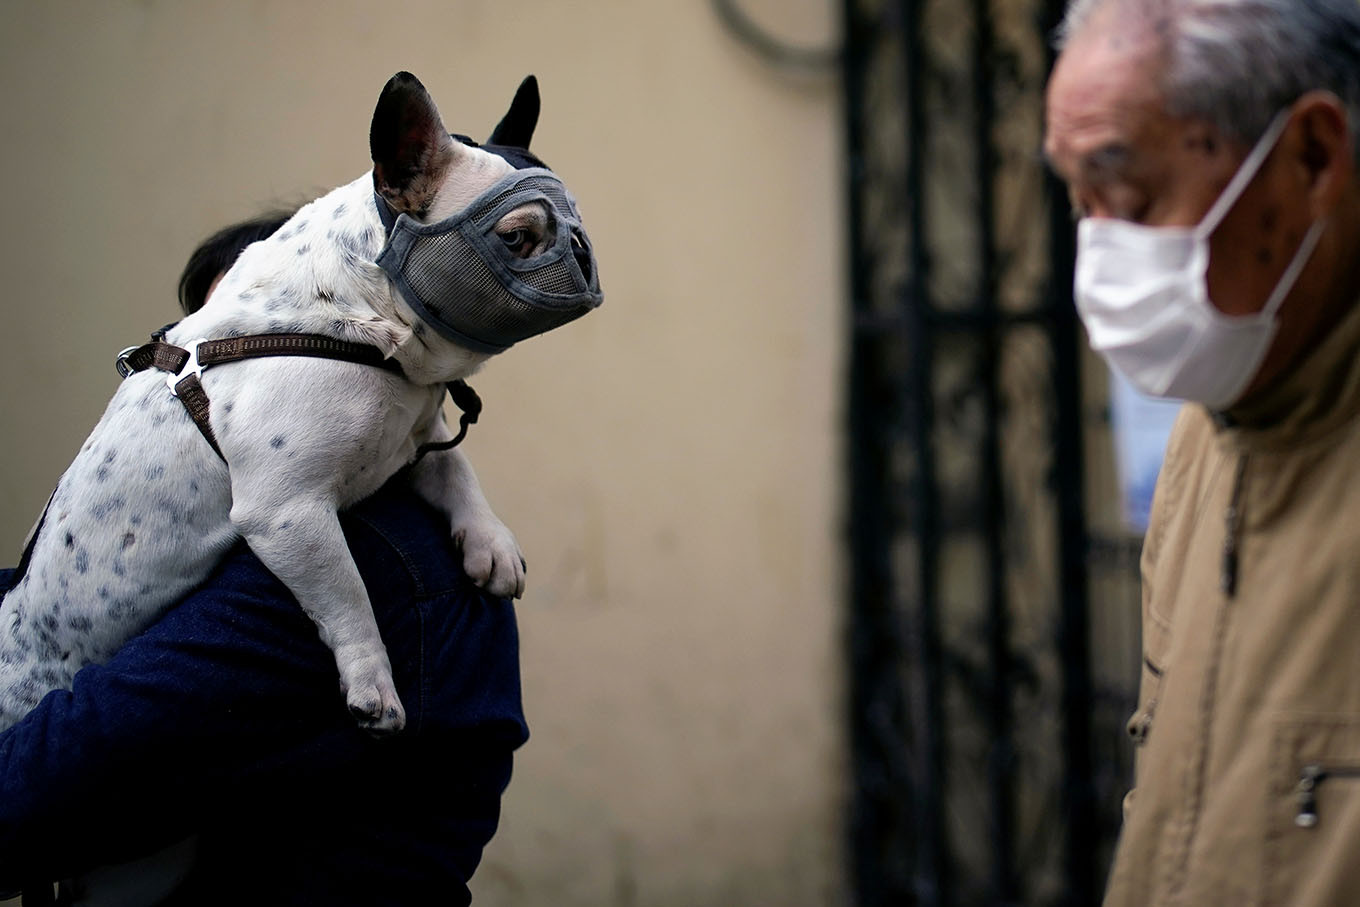 Wash your hands after stroking your pet, say French experts